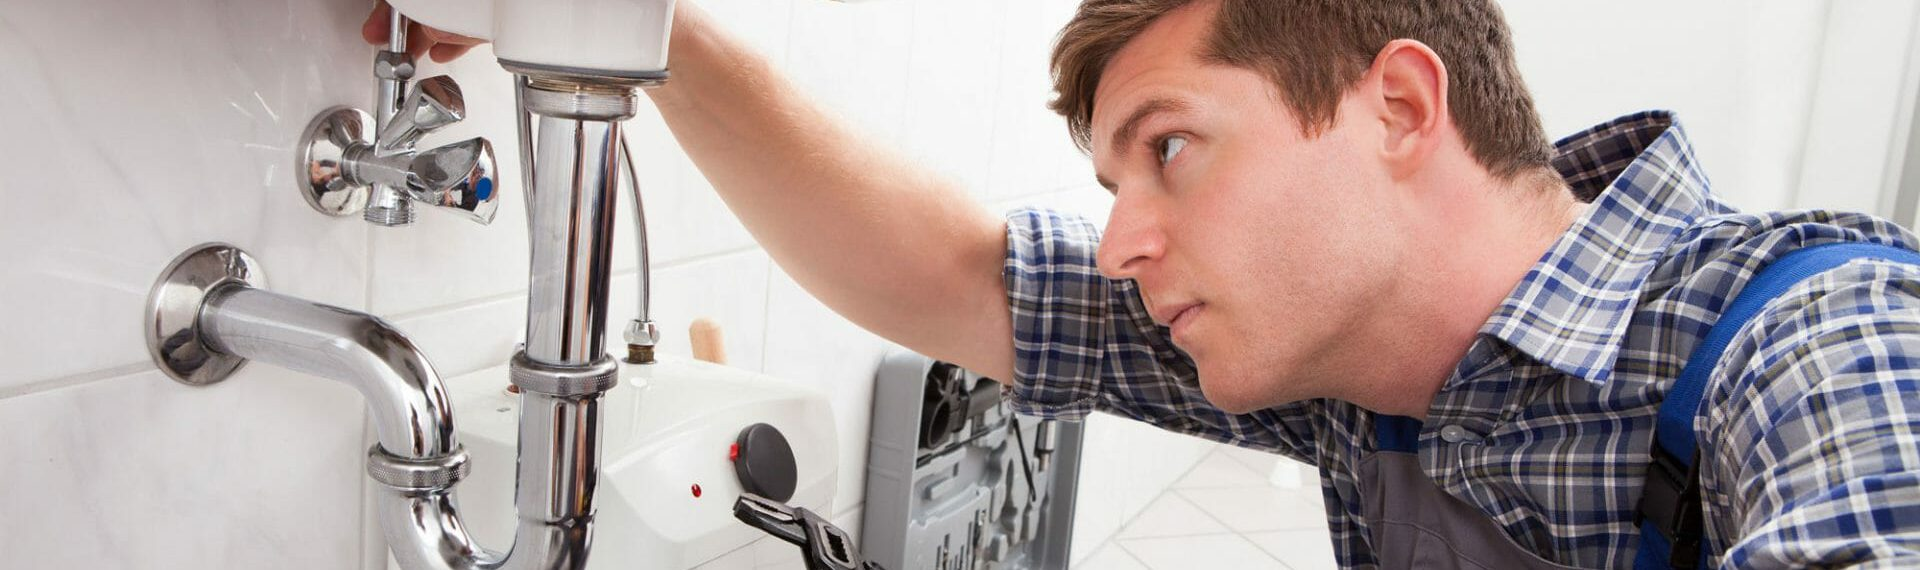 plumbing contractor working on white sink